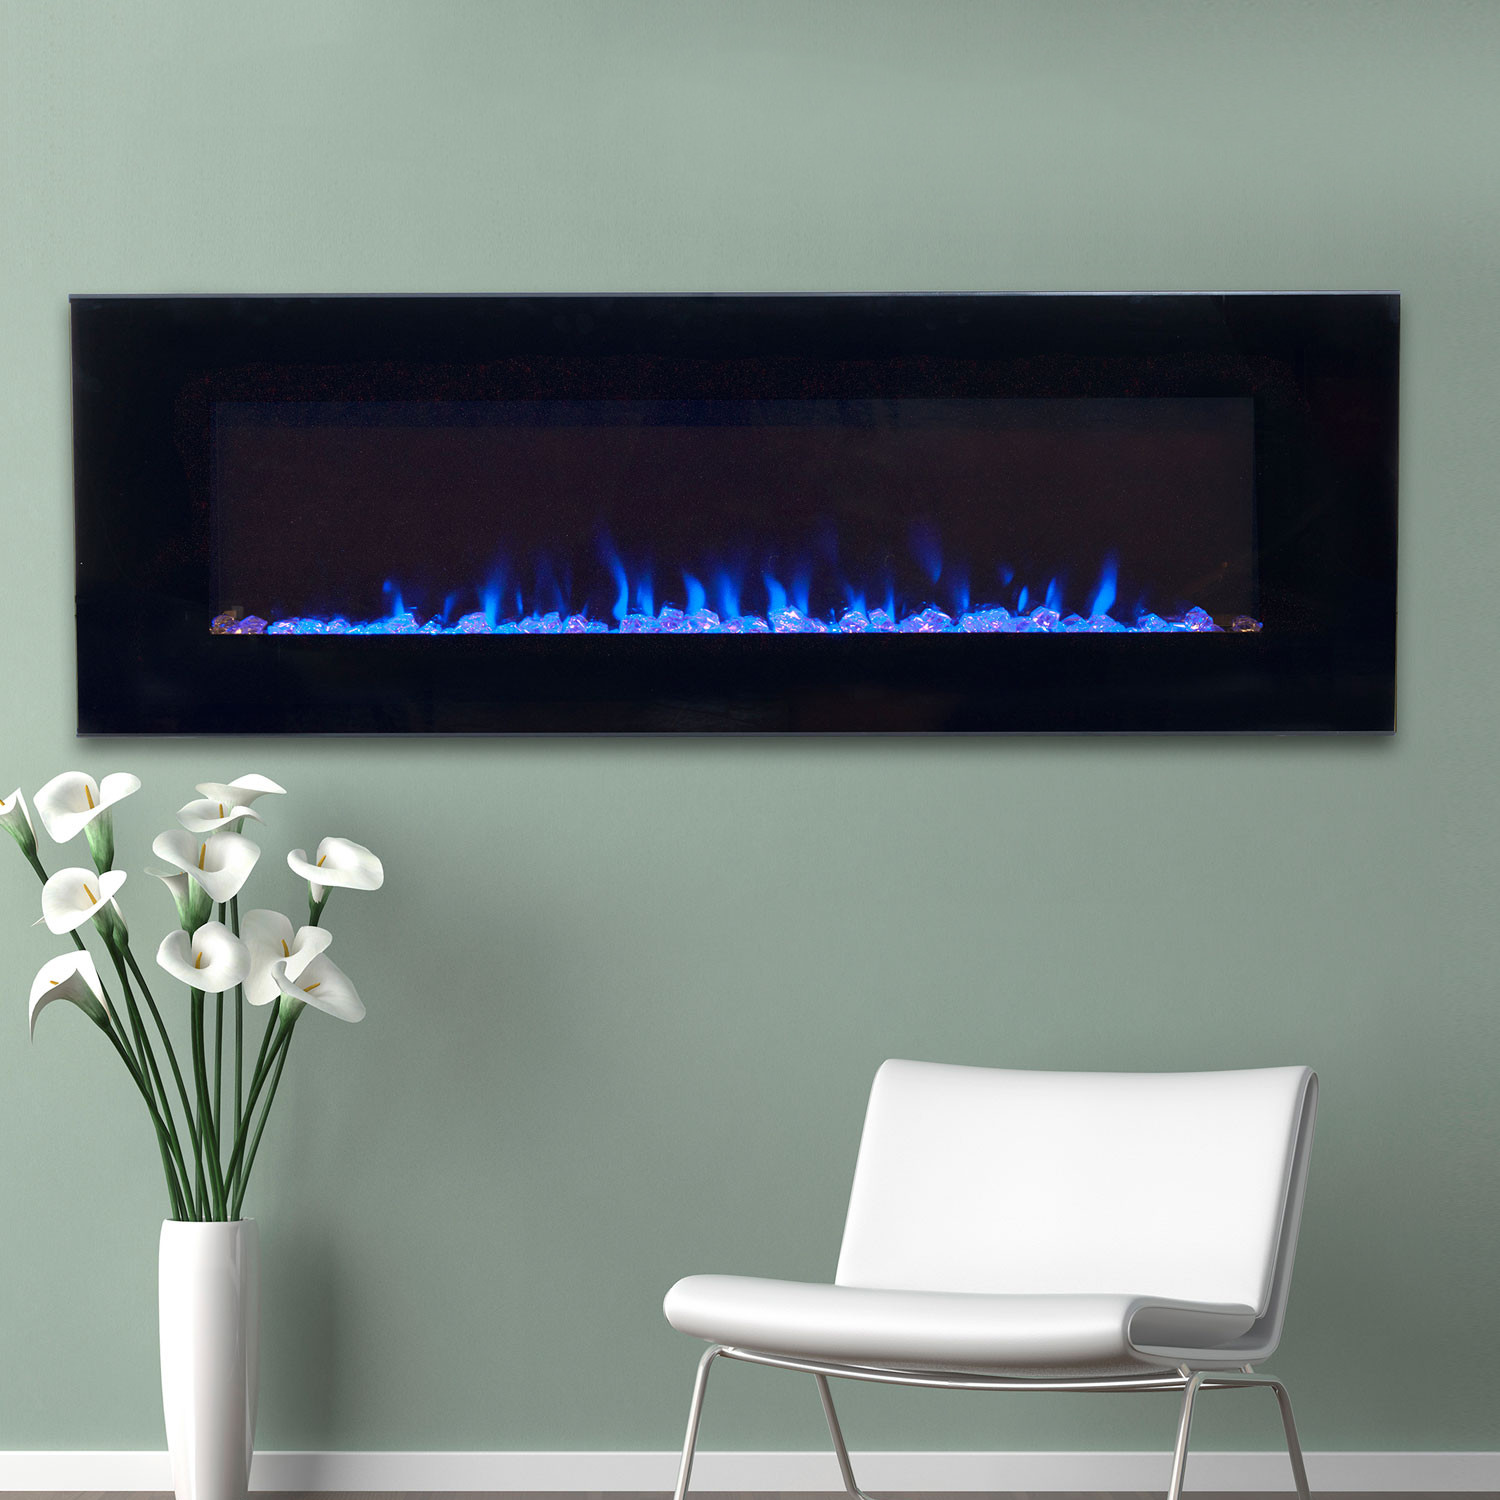 Form and function come together in this beautiful Wall Mounted Electric Fireplace Heater from Northwest. The sleek